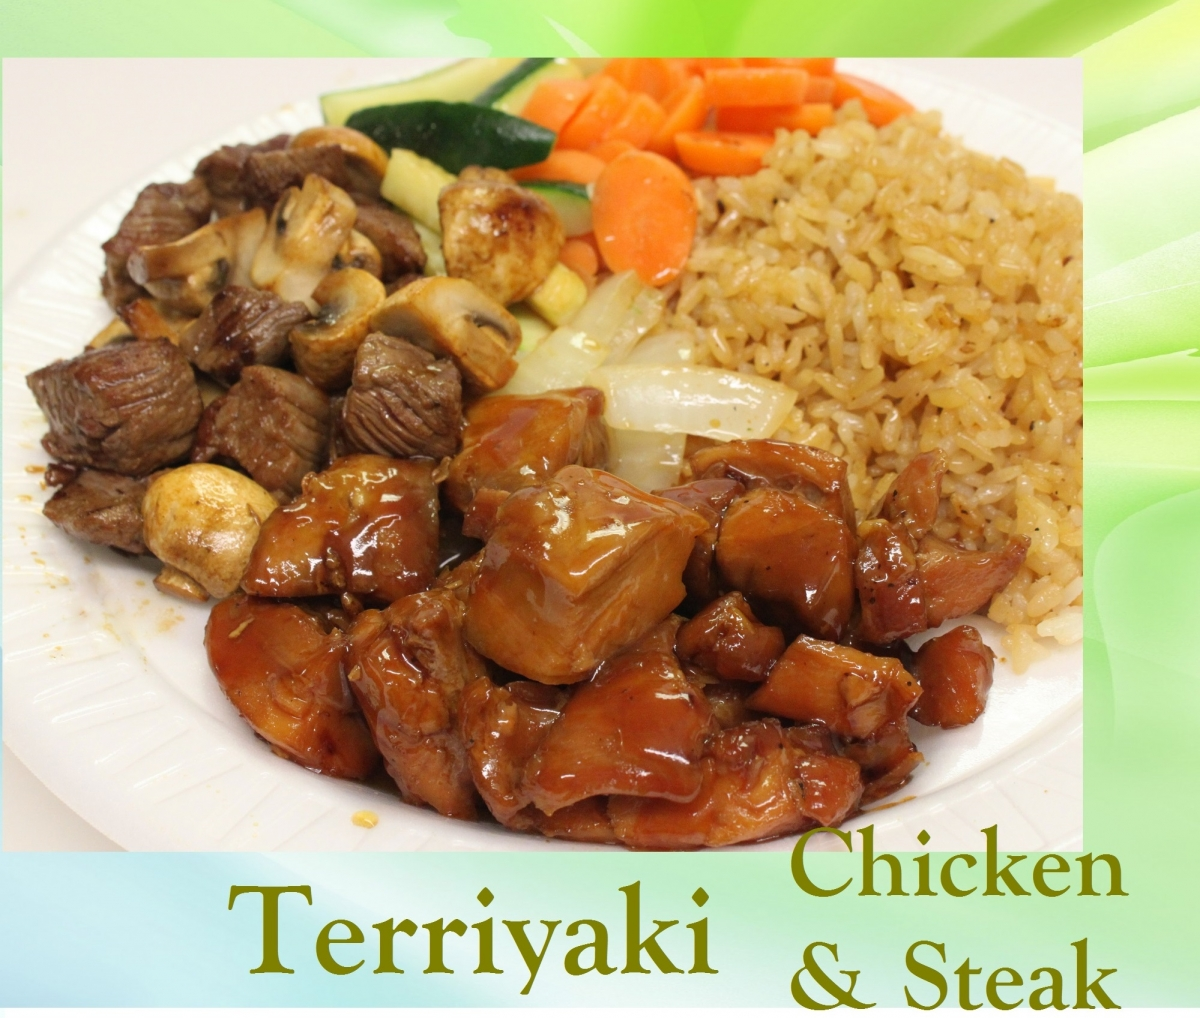 Terriyaki Chicken and Steak